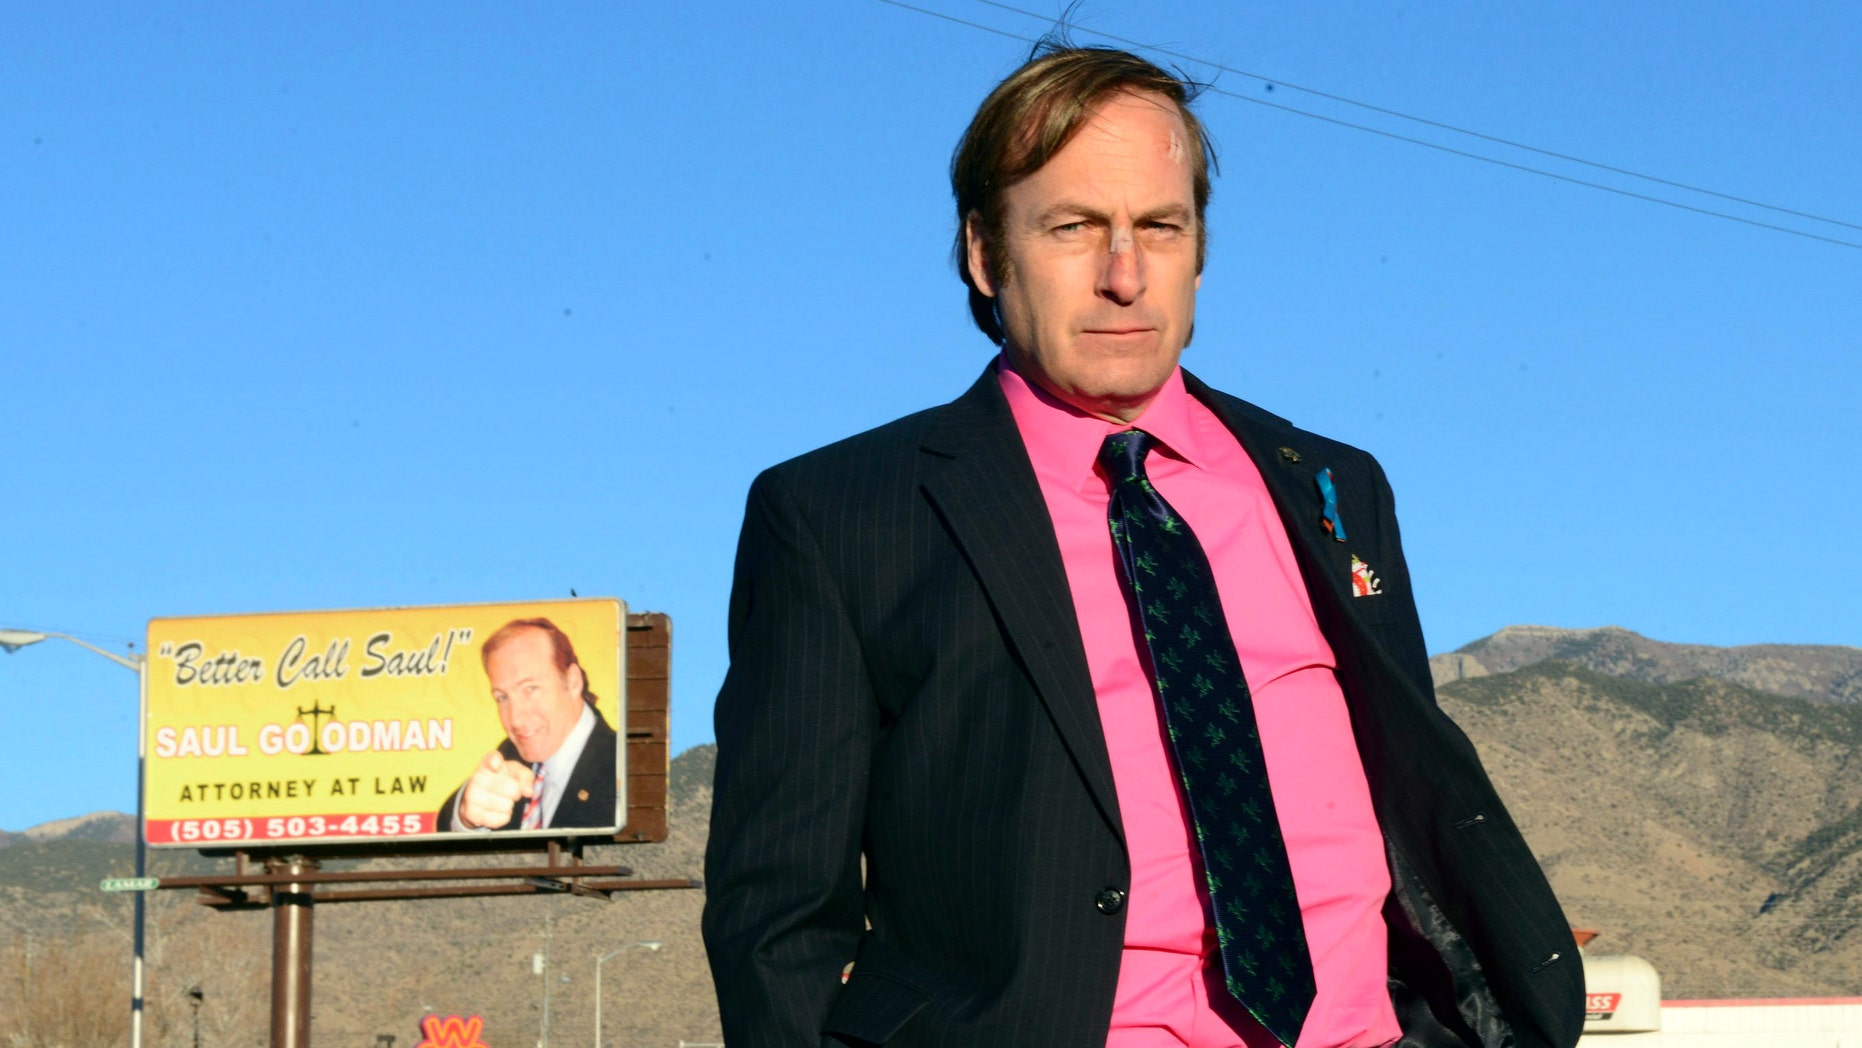 """FILE - This image released by AMC shows Bob Odenkirk in a scene from the final season of """"Breaking Bad."""" AMC confirmed that Odenkirk, who plays Saul Goodman, will star in a one-hour prequel tentatively titled """"Better Call Saul."""""""